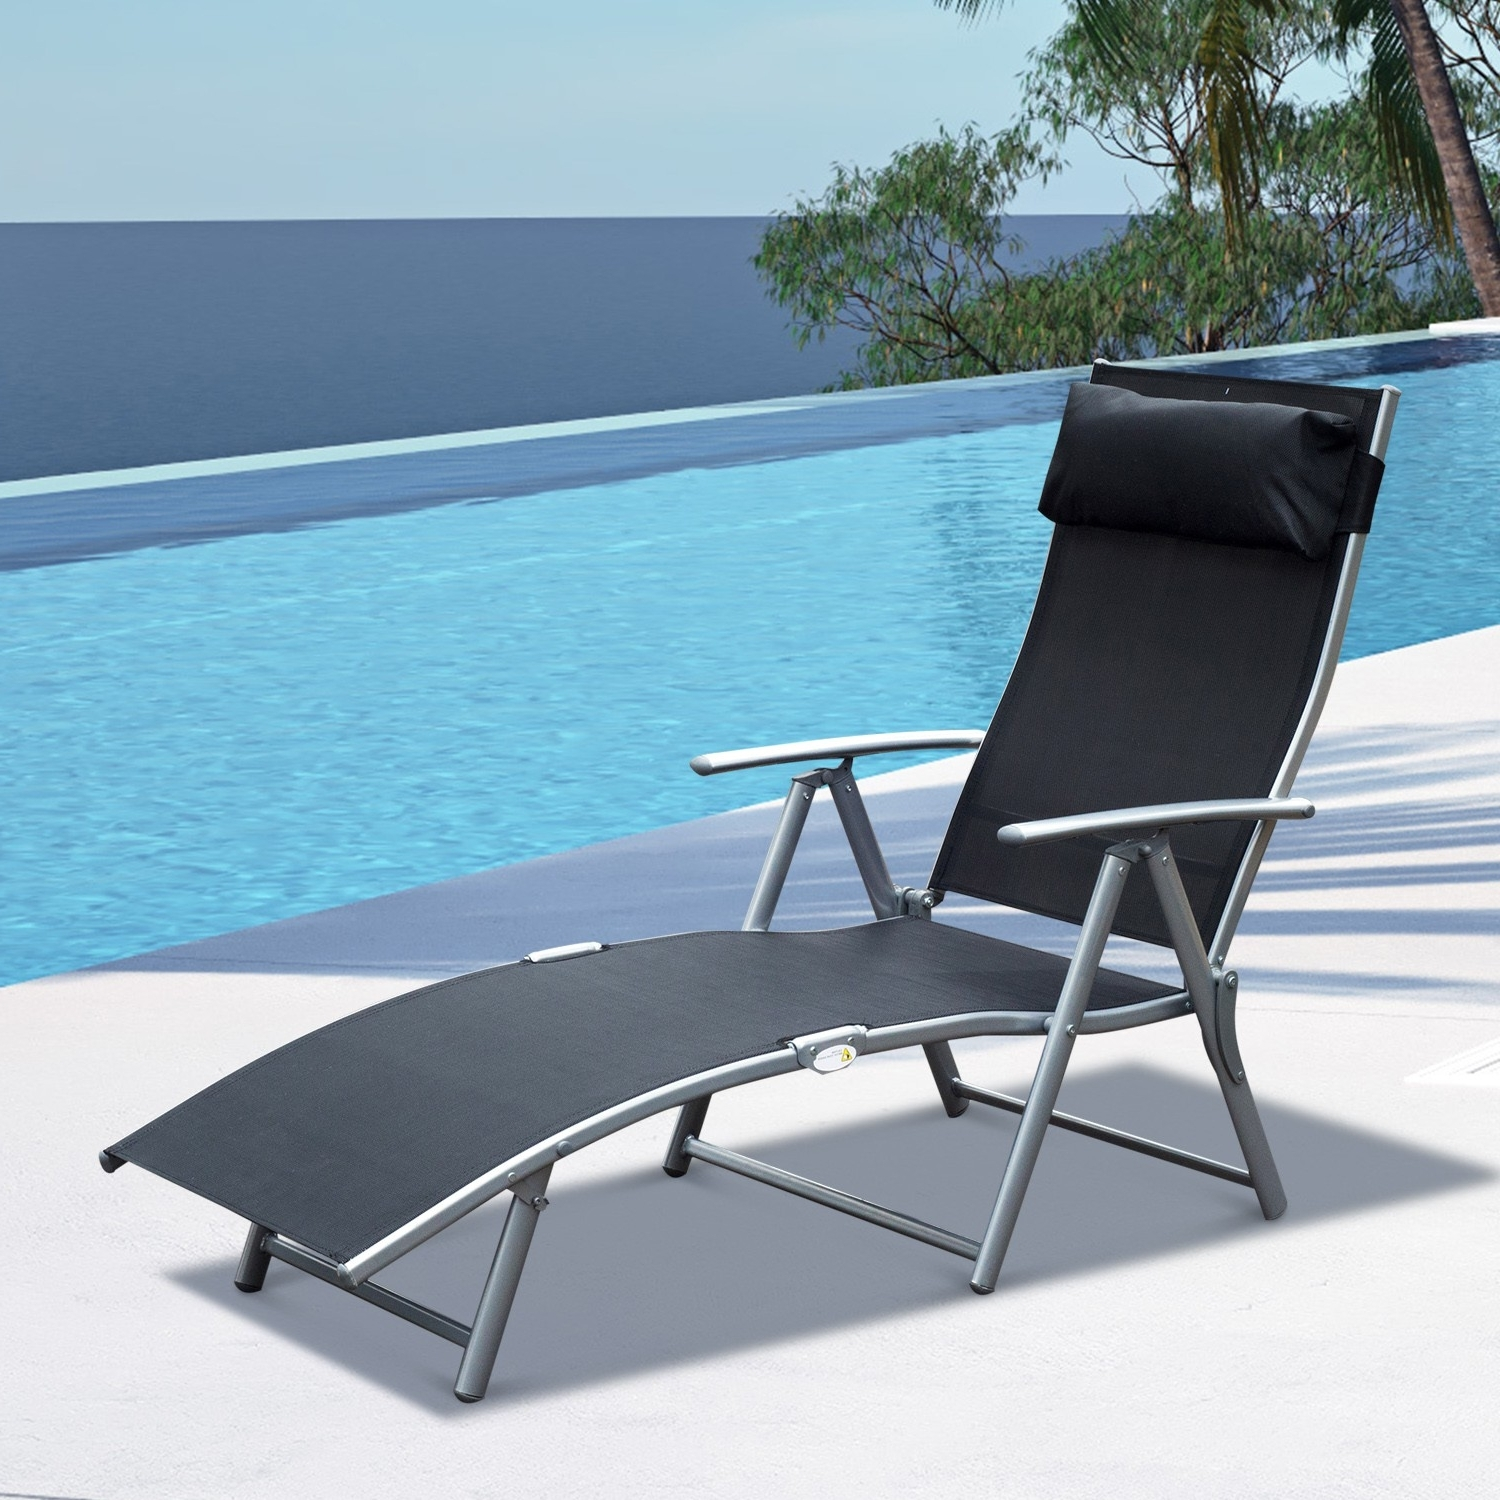 Popular Heavy Duty Chaise Lounge Chairs With Lounge Chair : Chairs Patio Chairs For Large People Lounge Chairs (View 10 of 15)